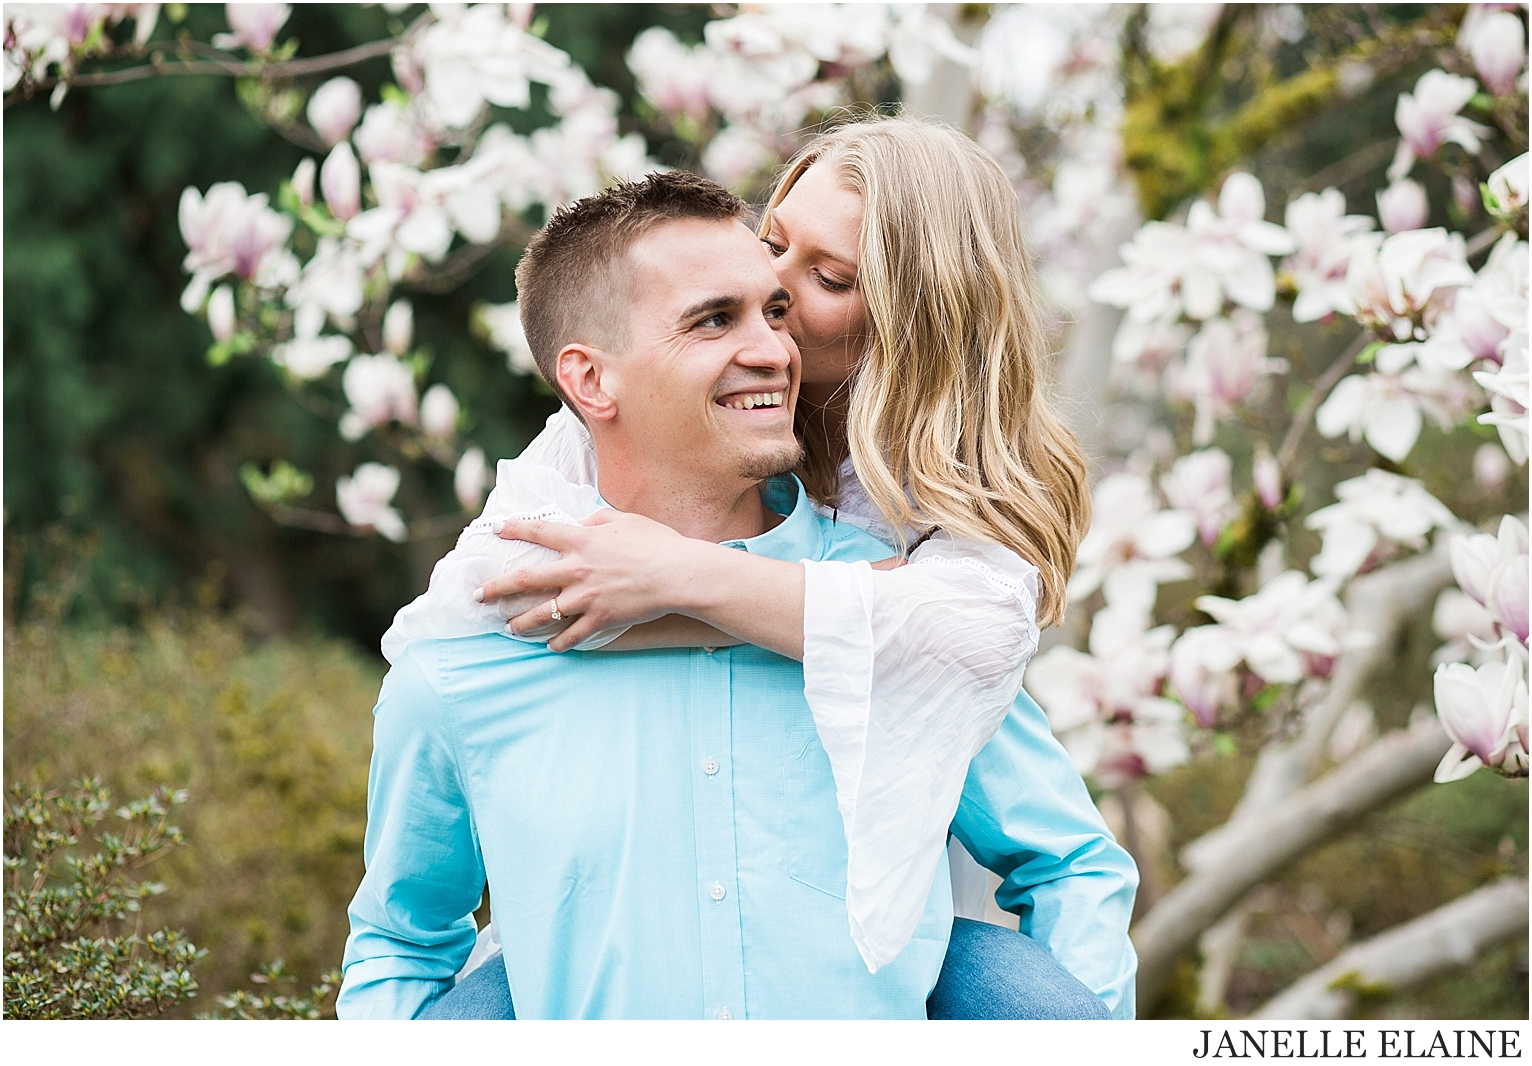 tricia and nate engagement photos-janelle elaine photography-165.jpg